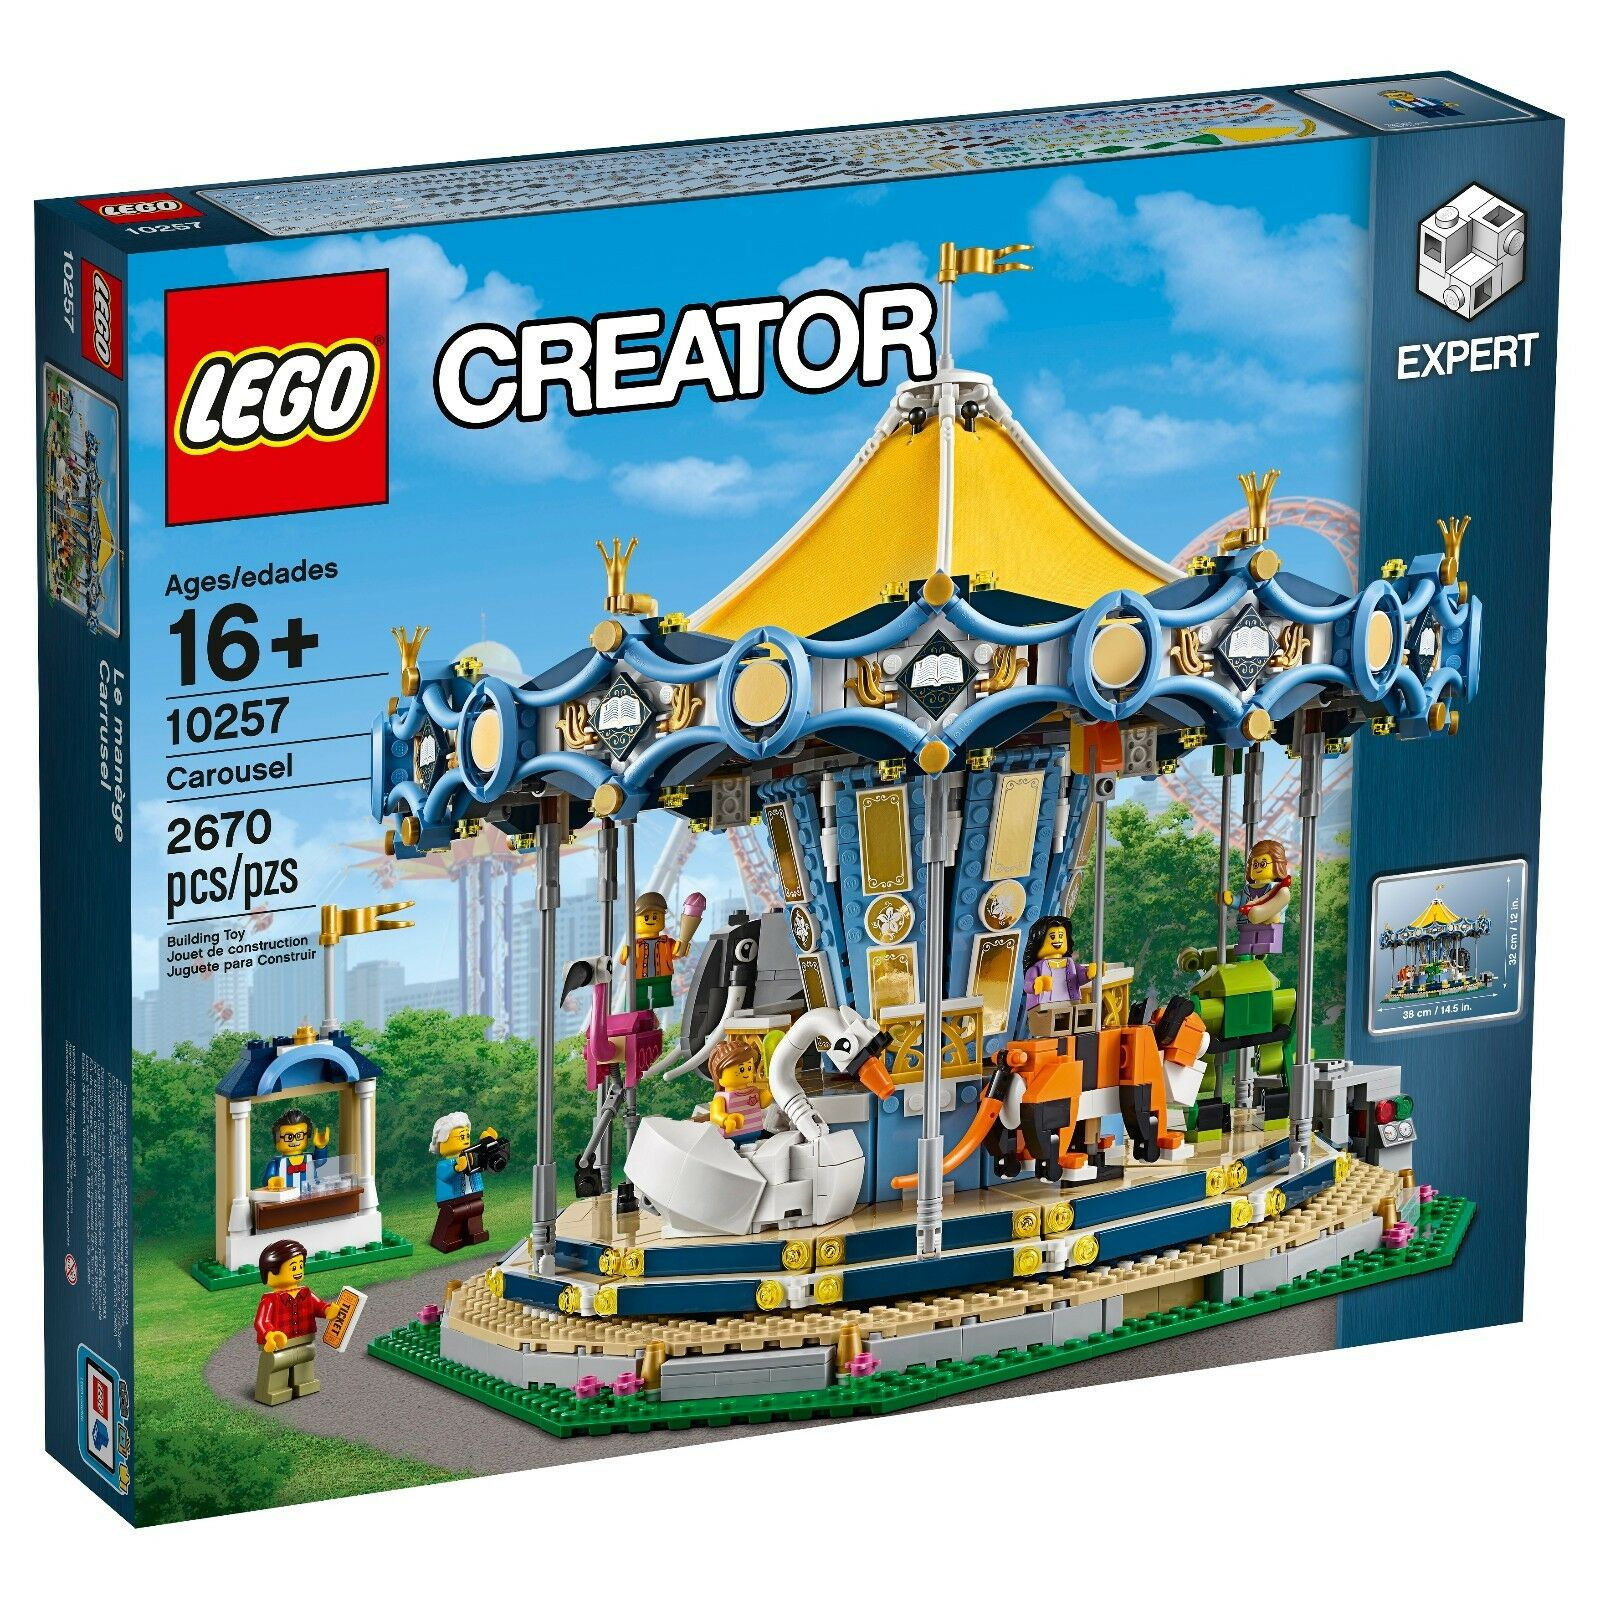 NEW NEW NEW LEGO 10257 CAROUSEL - Brand New Boxed 6ad368